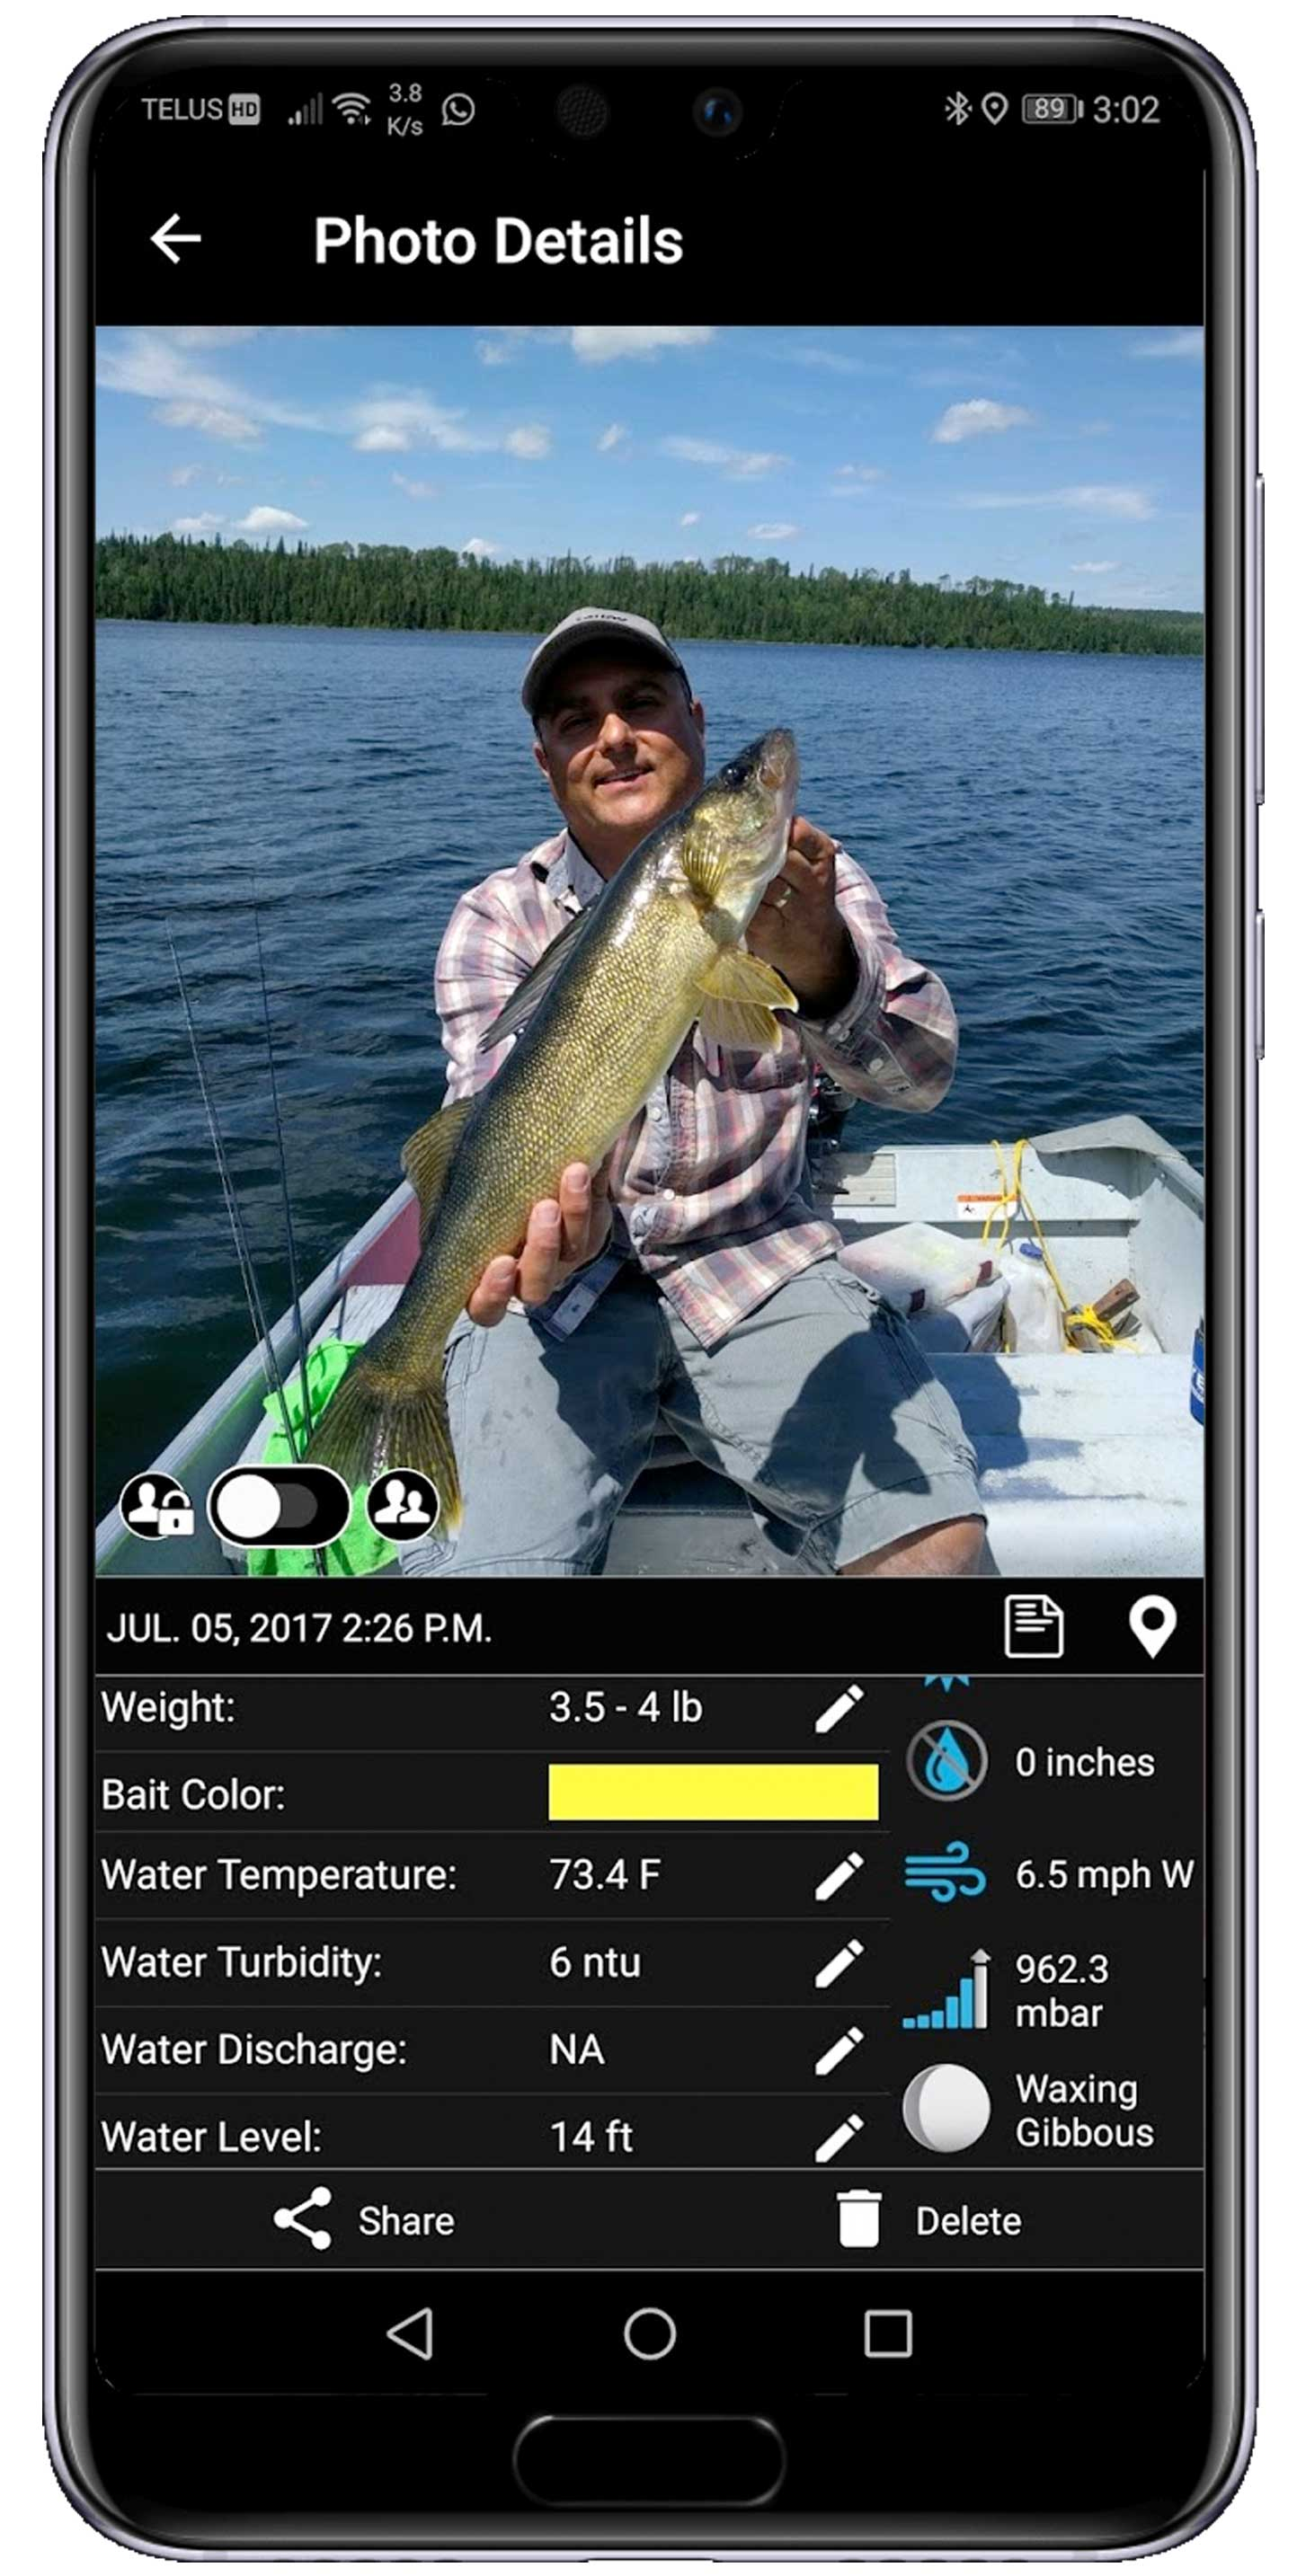 Fish Catch Digital Logs